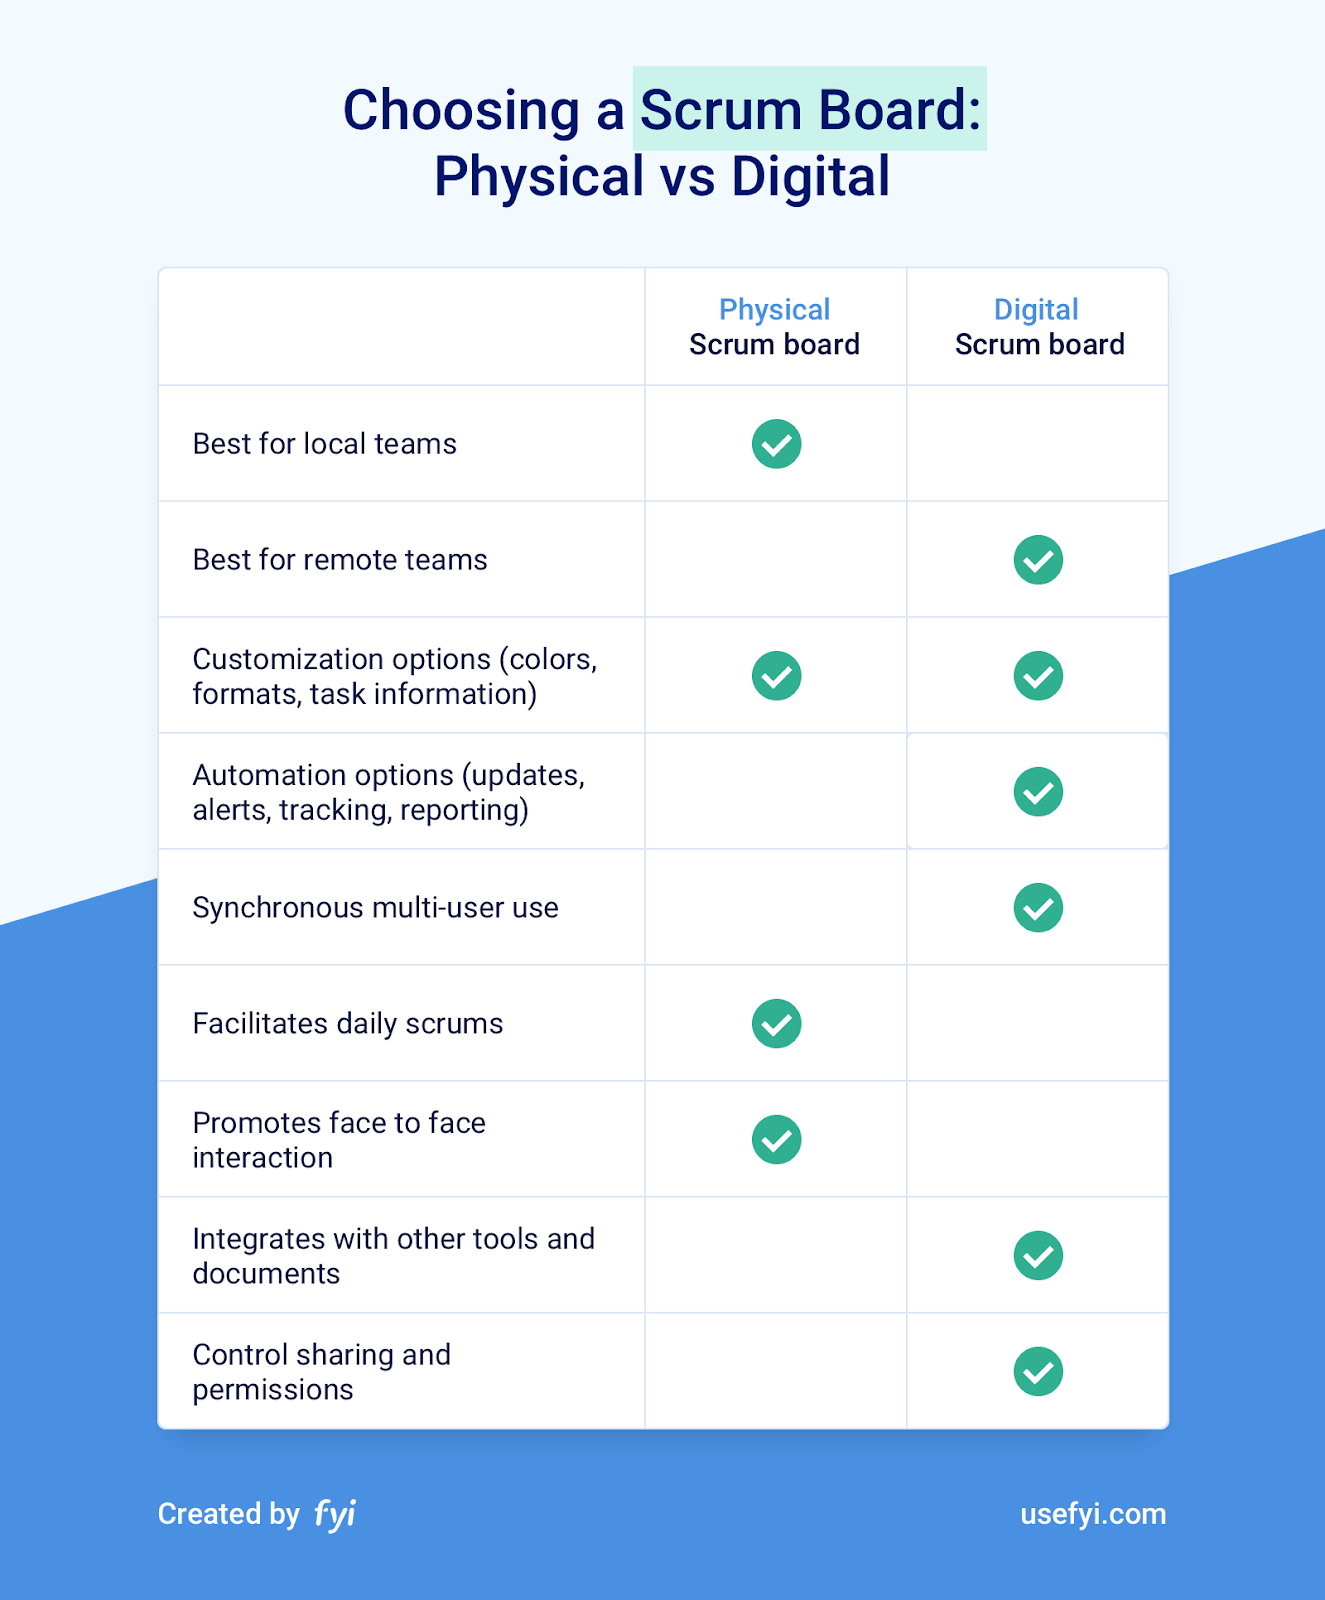 differences between Physical and Digital Scrum Boards